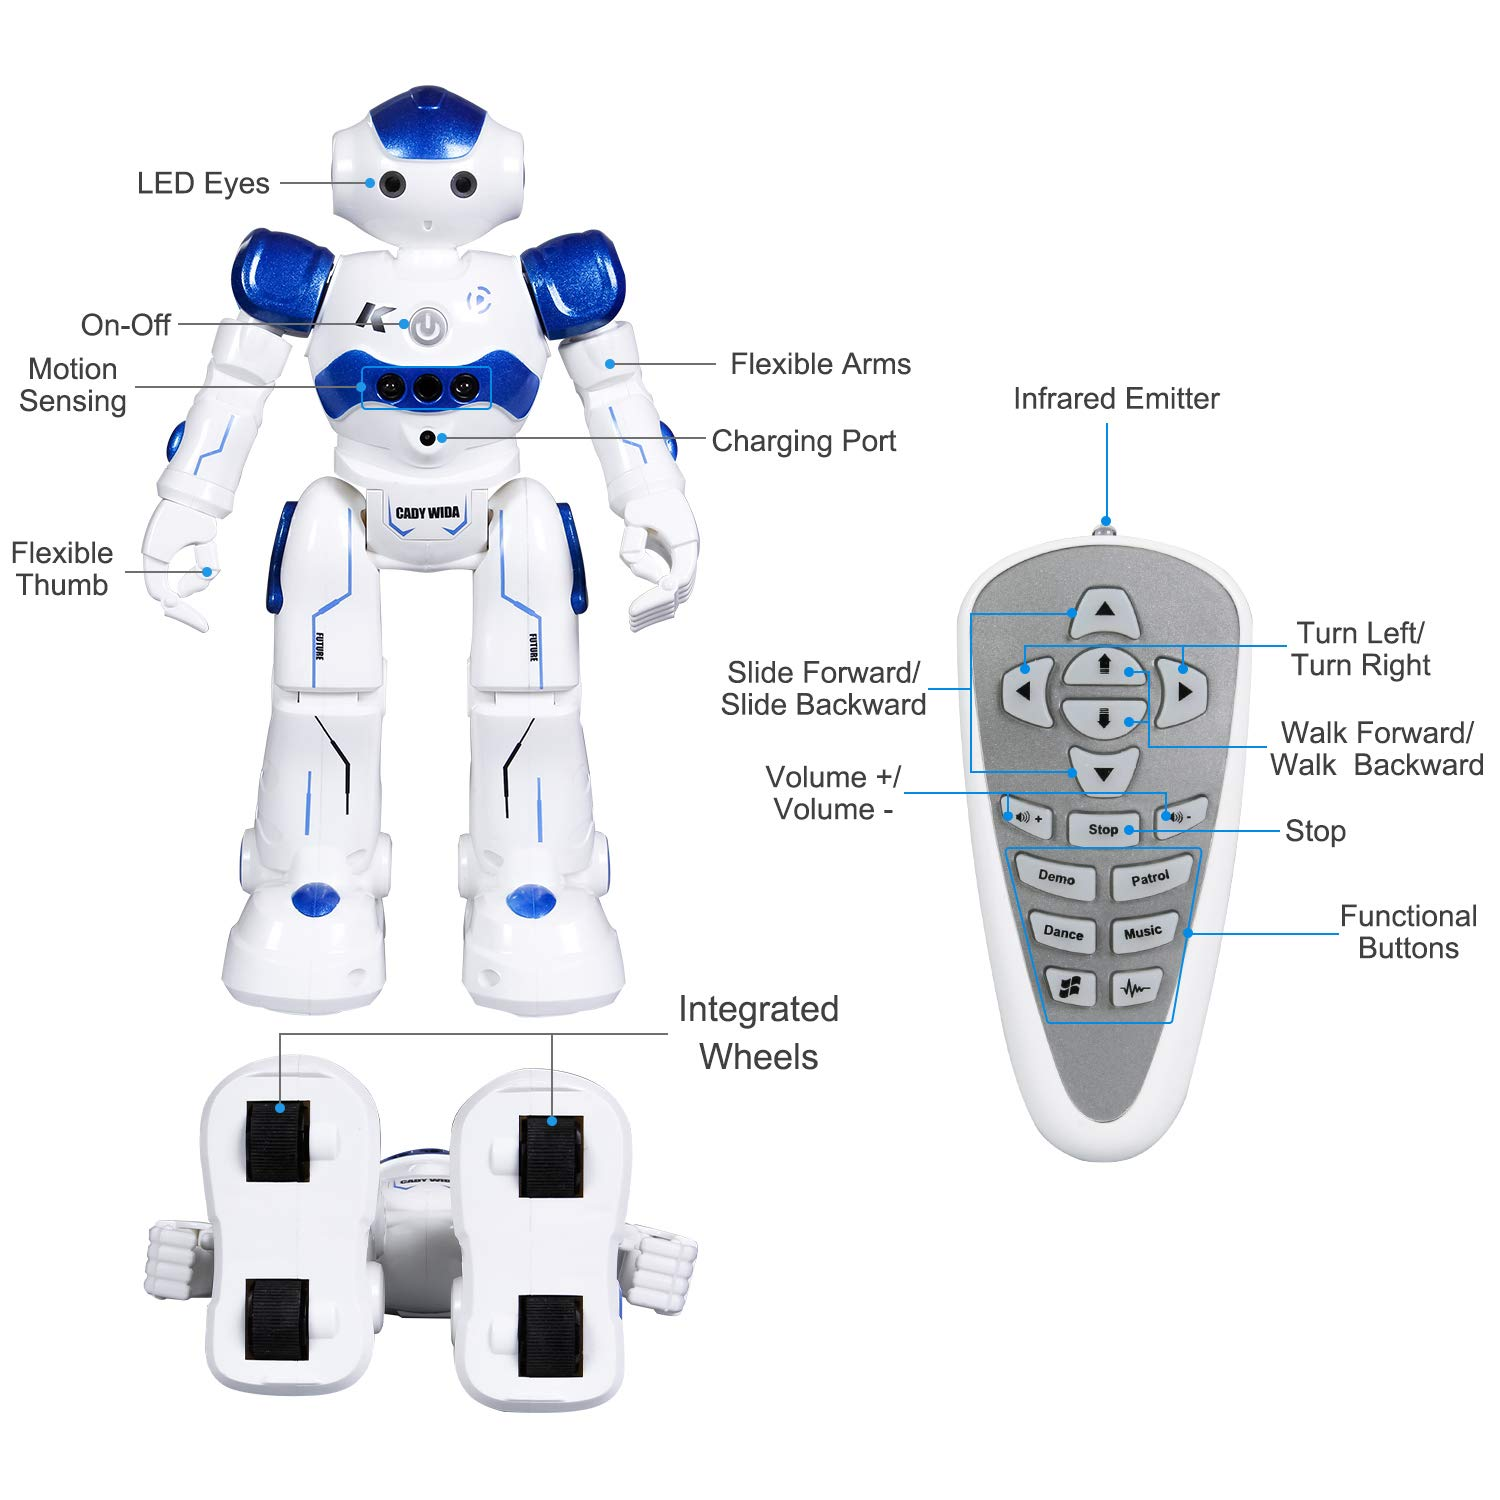 SGILE Remote Control Robot, RC Programmable Educational Robot for Kids Birthday Gift Present, Interactive Walking Singing Dancing Smart Intelligent Robotics for Kids Boy, Blue by SGILE (Image #4)